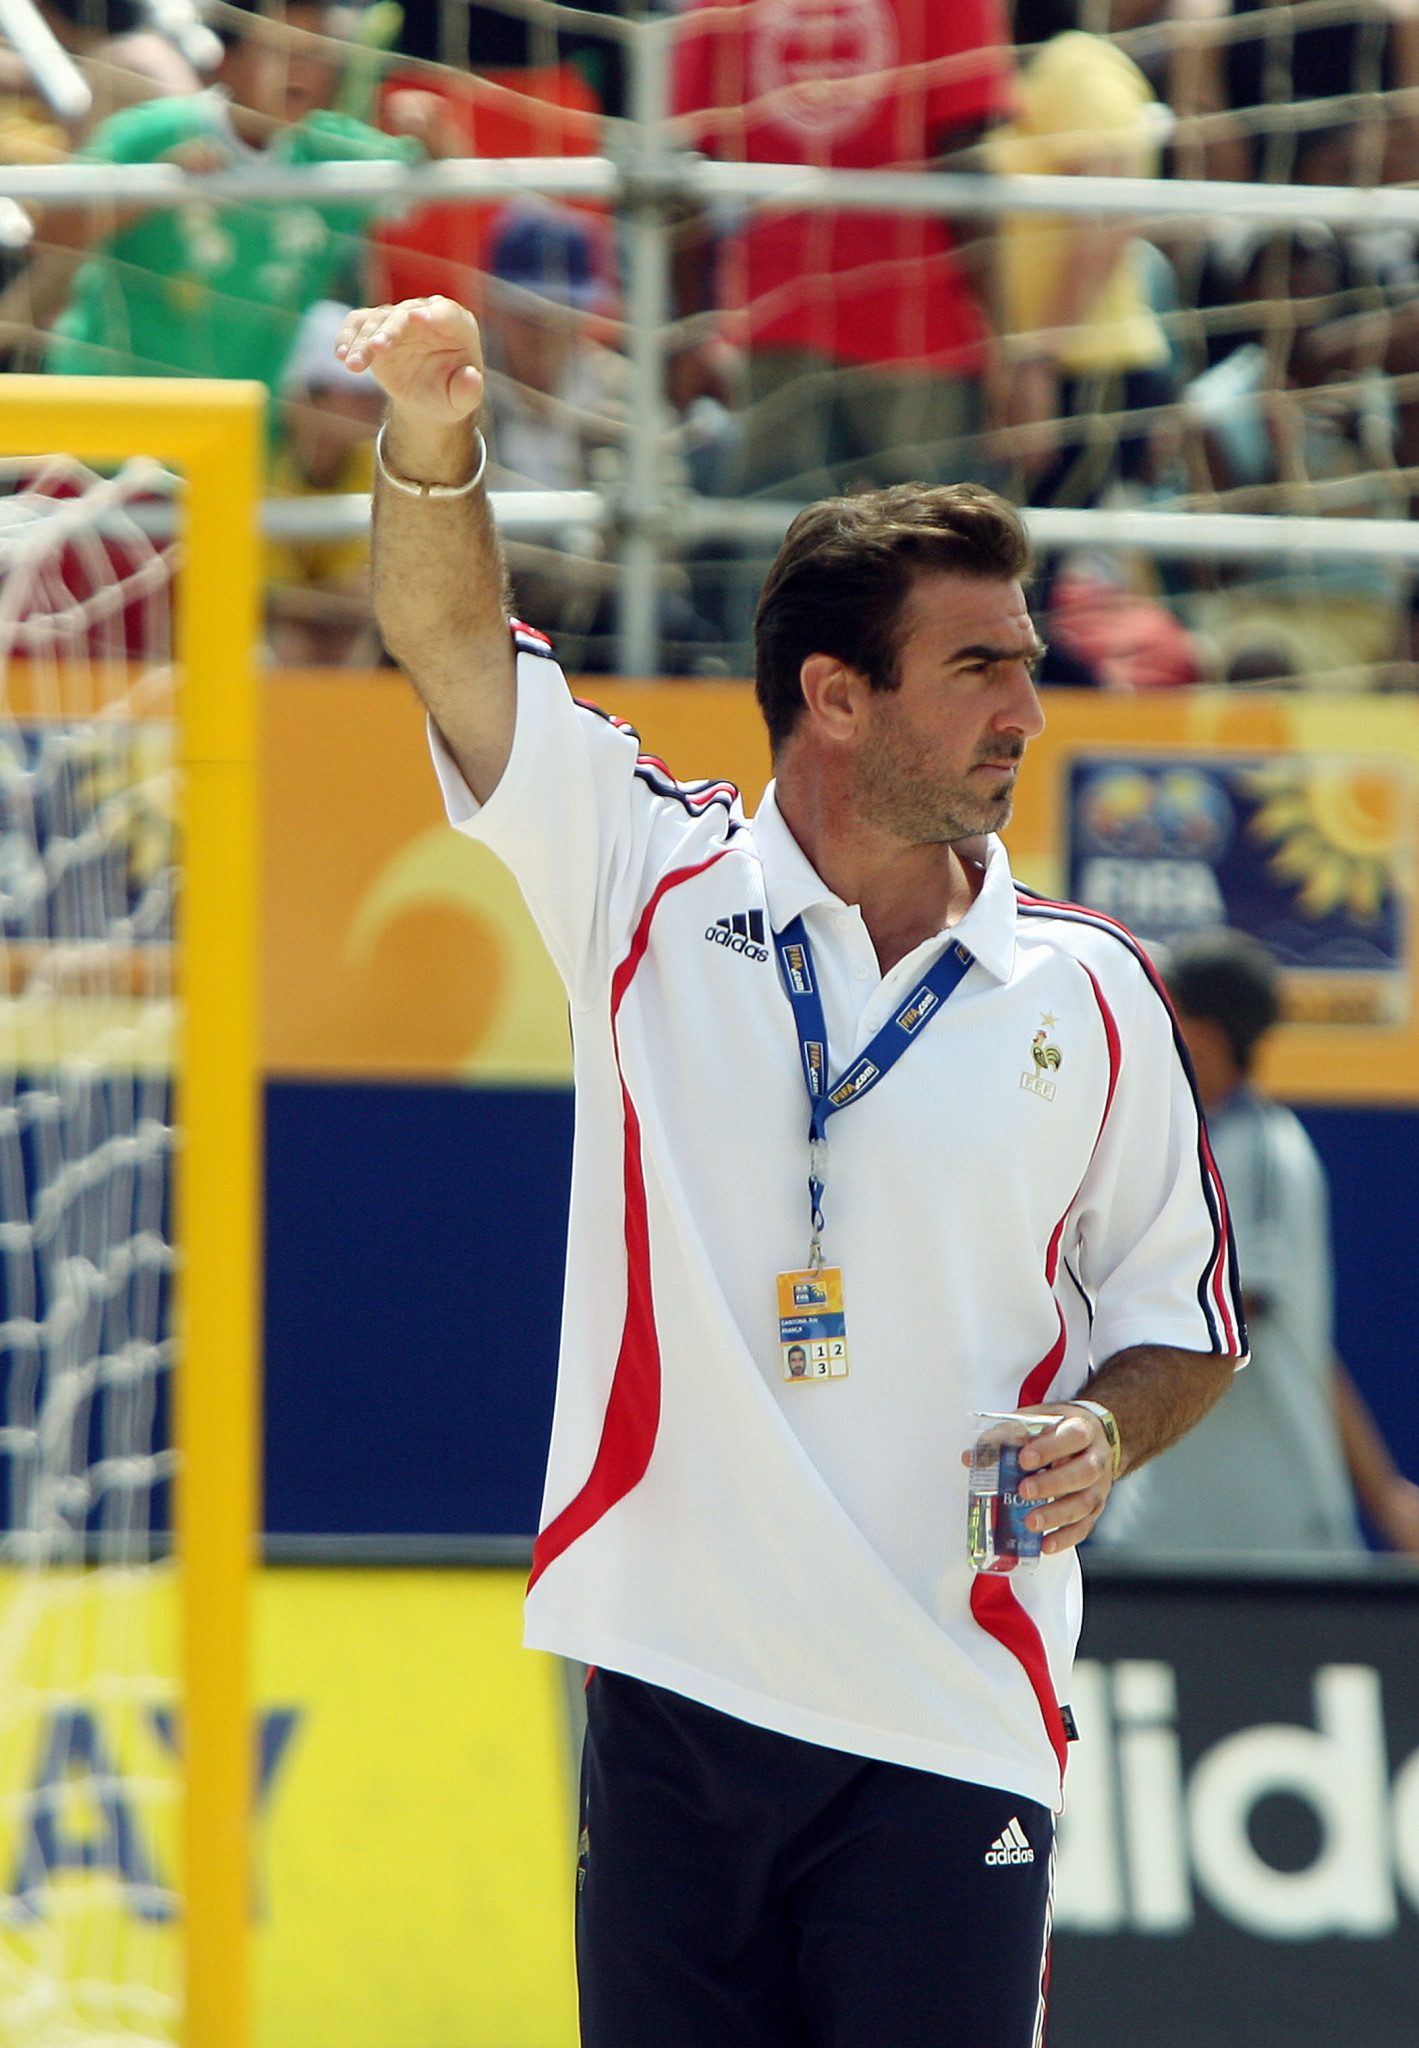 Former Manchester United star Eric Cantona was a highly successful beach soccer player and coach for 15 years after retiring from his main career, playing a key role in promoting the sport ©Getty Images